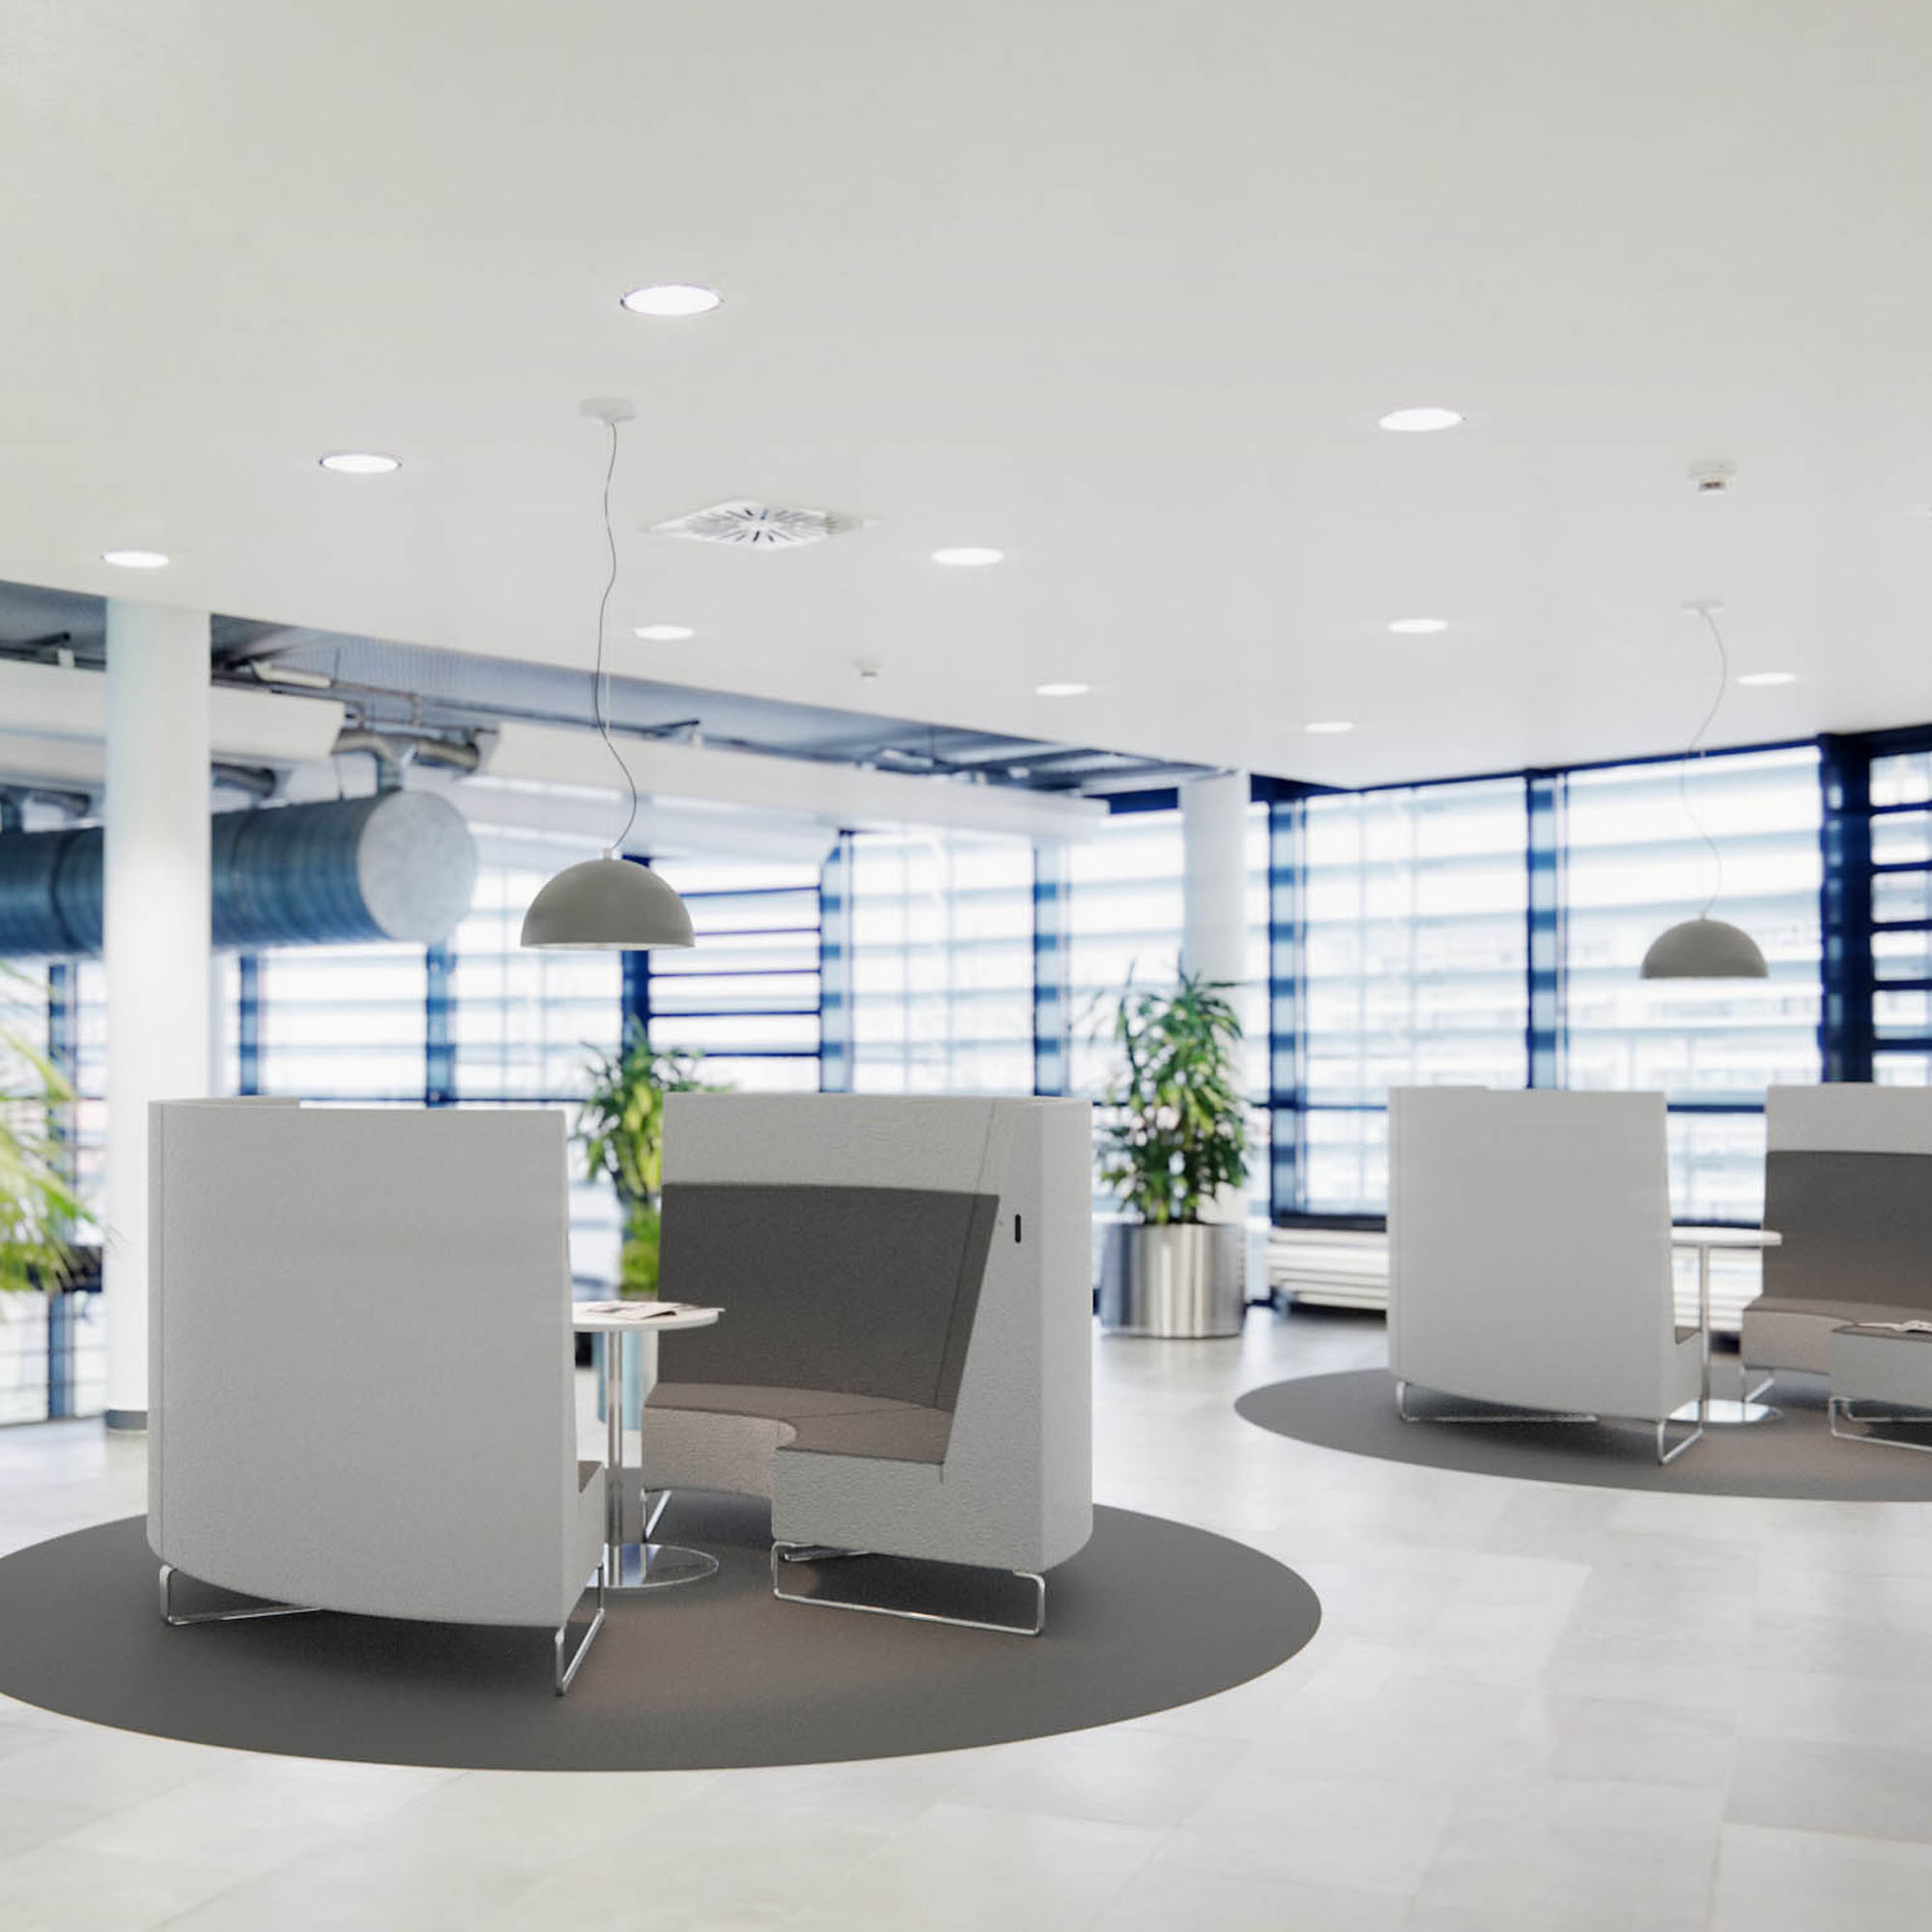 For ABB Automation GmbH IRED designed functional interiors for customers and employees.